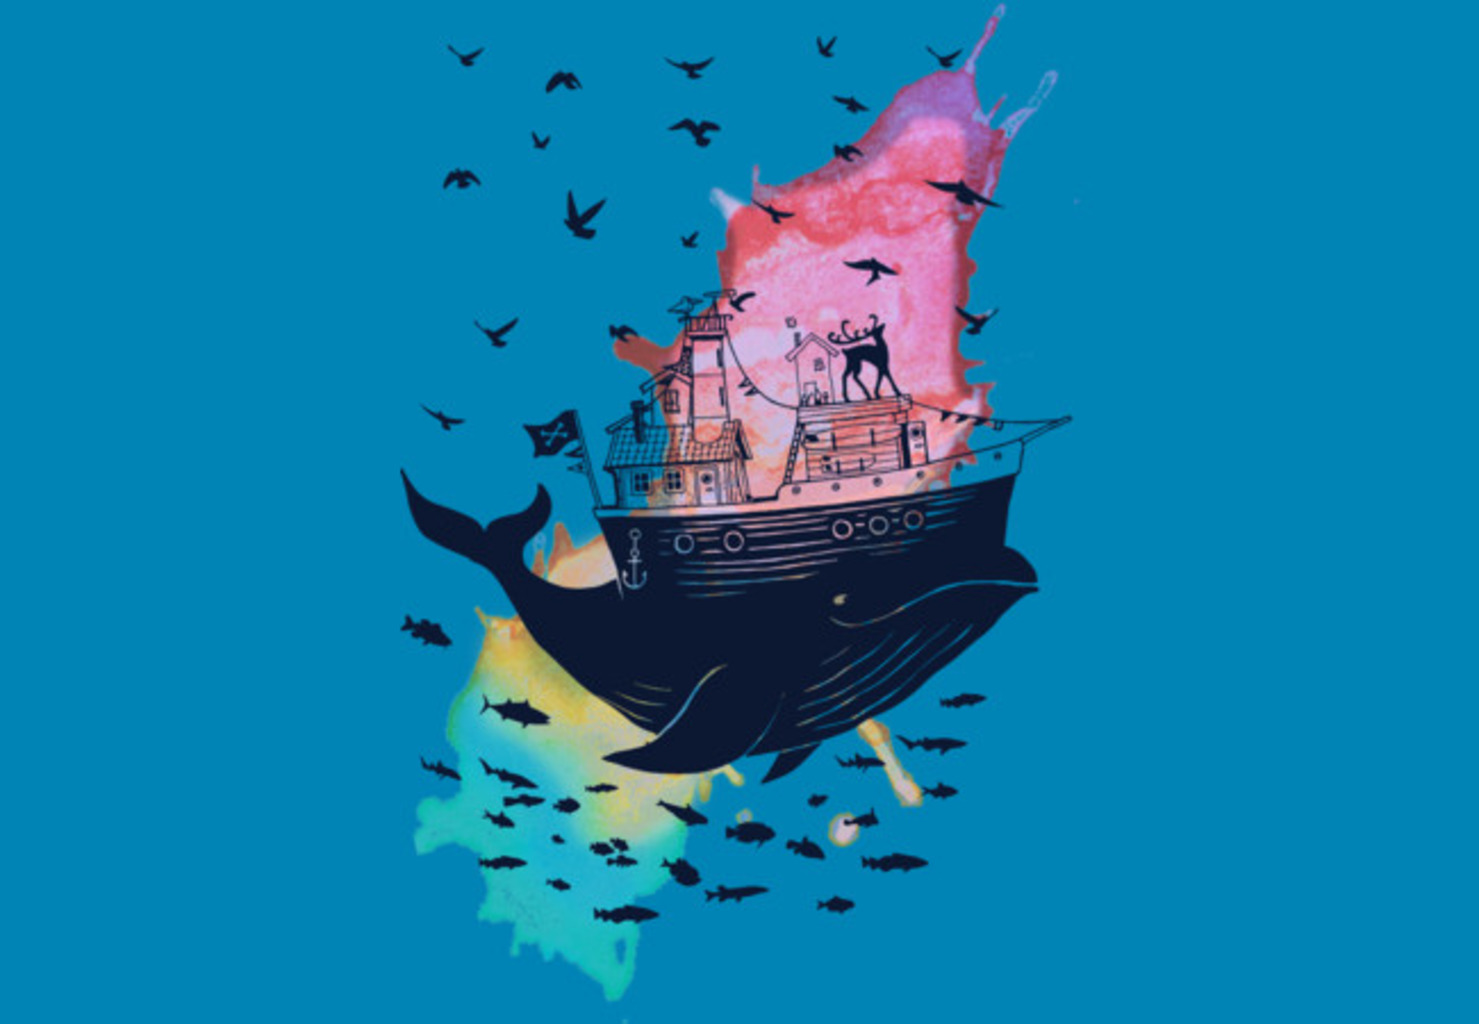 Design by Humans: Whale Boat House Watercolours